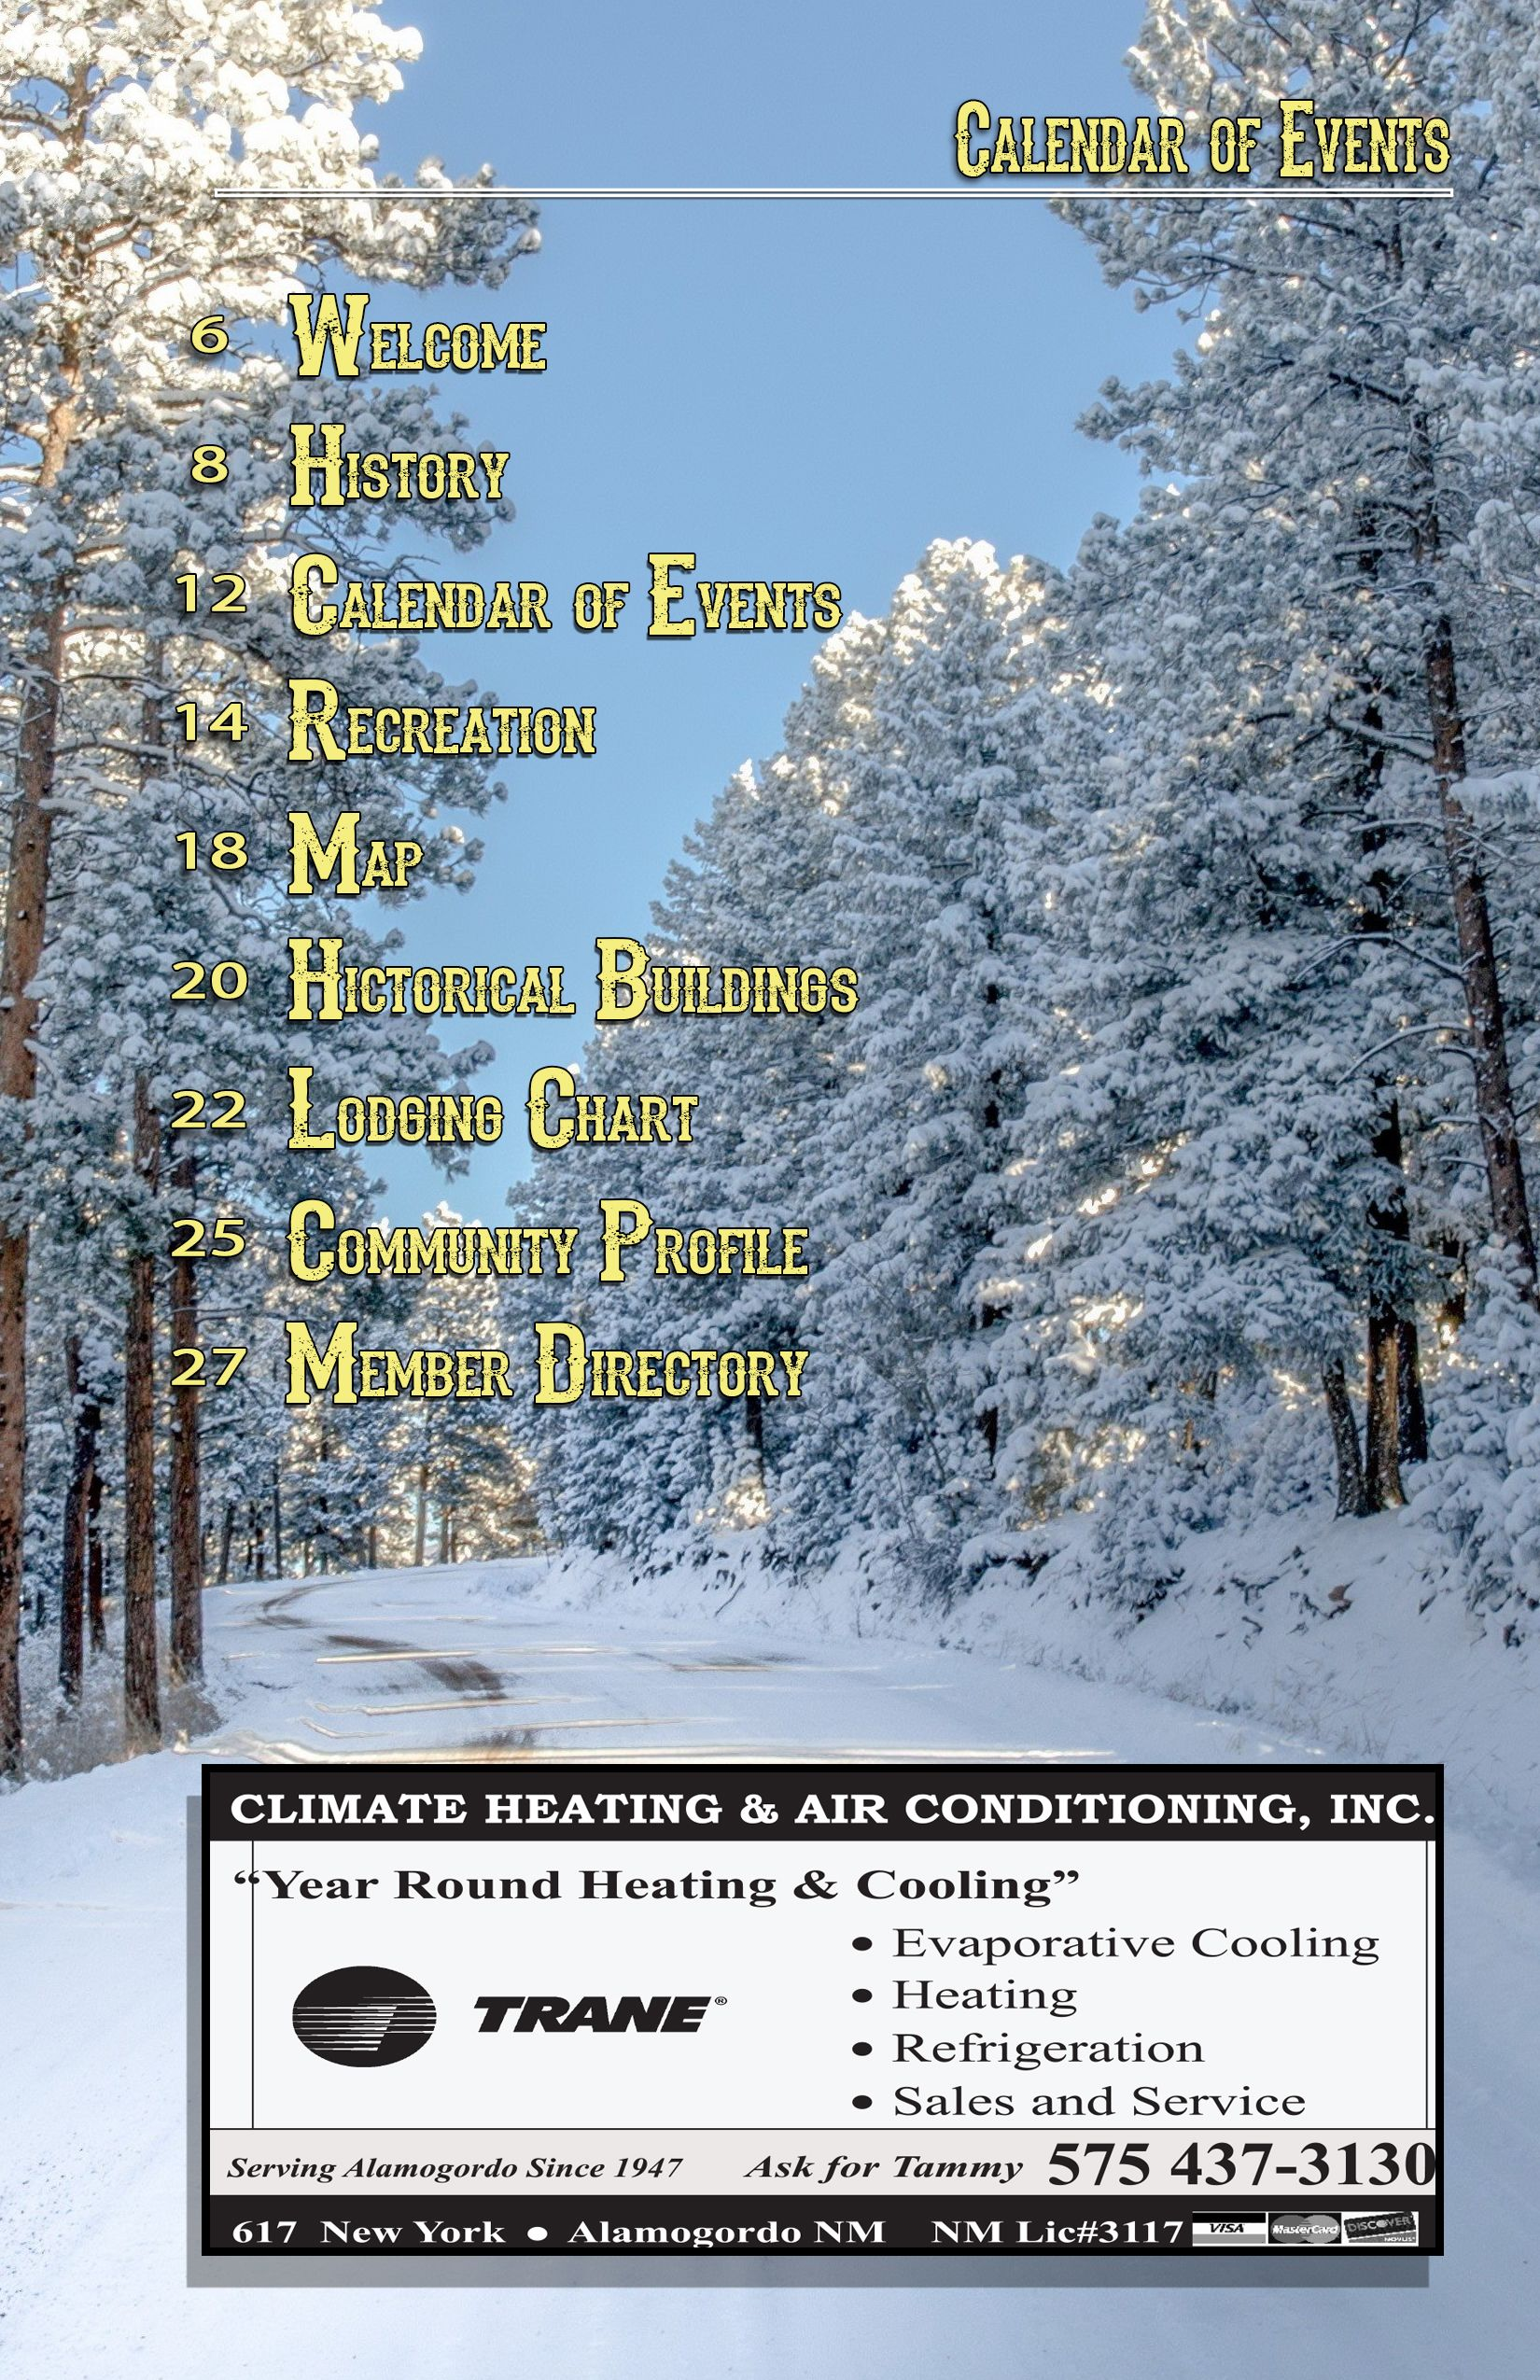 Image By Rhonda Napoleon Event Calendar Cloudcroft Heating And